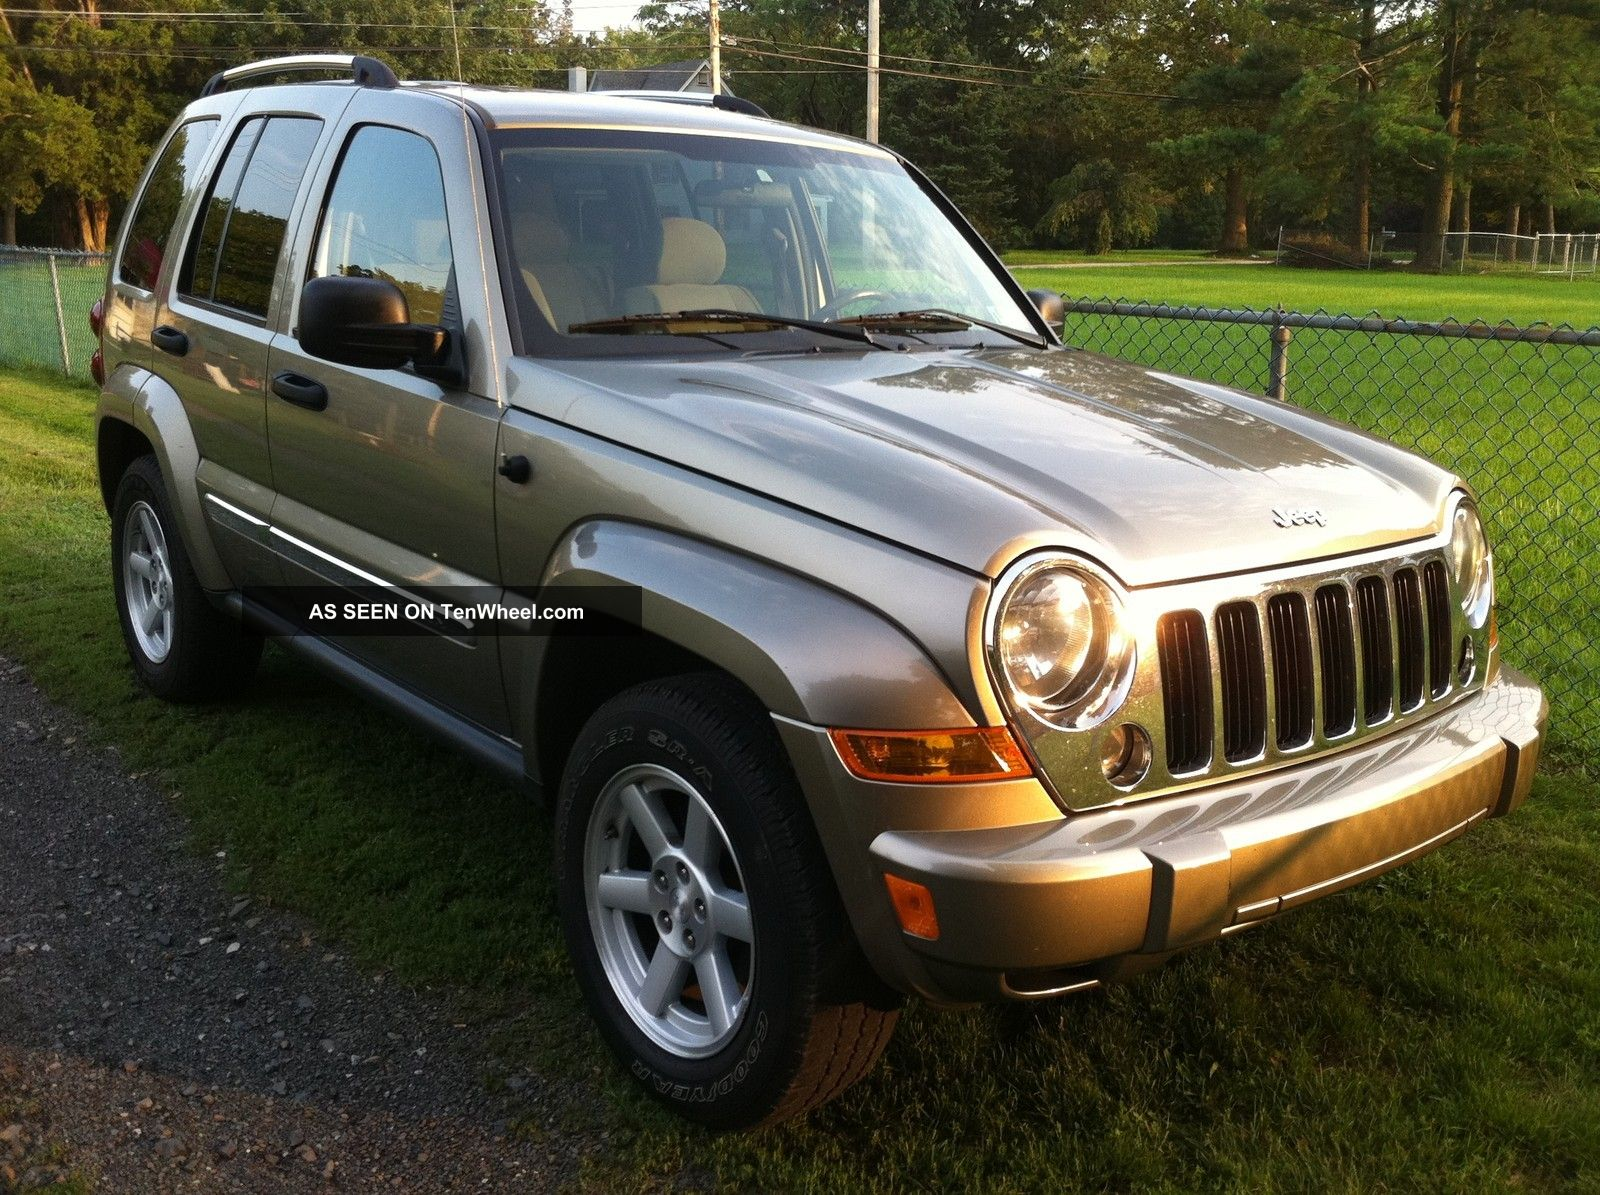 2005 Jeep Liberty Limited Trail Rated 4x4 Loaded 95k